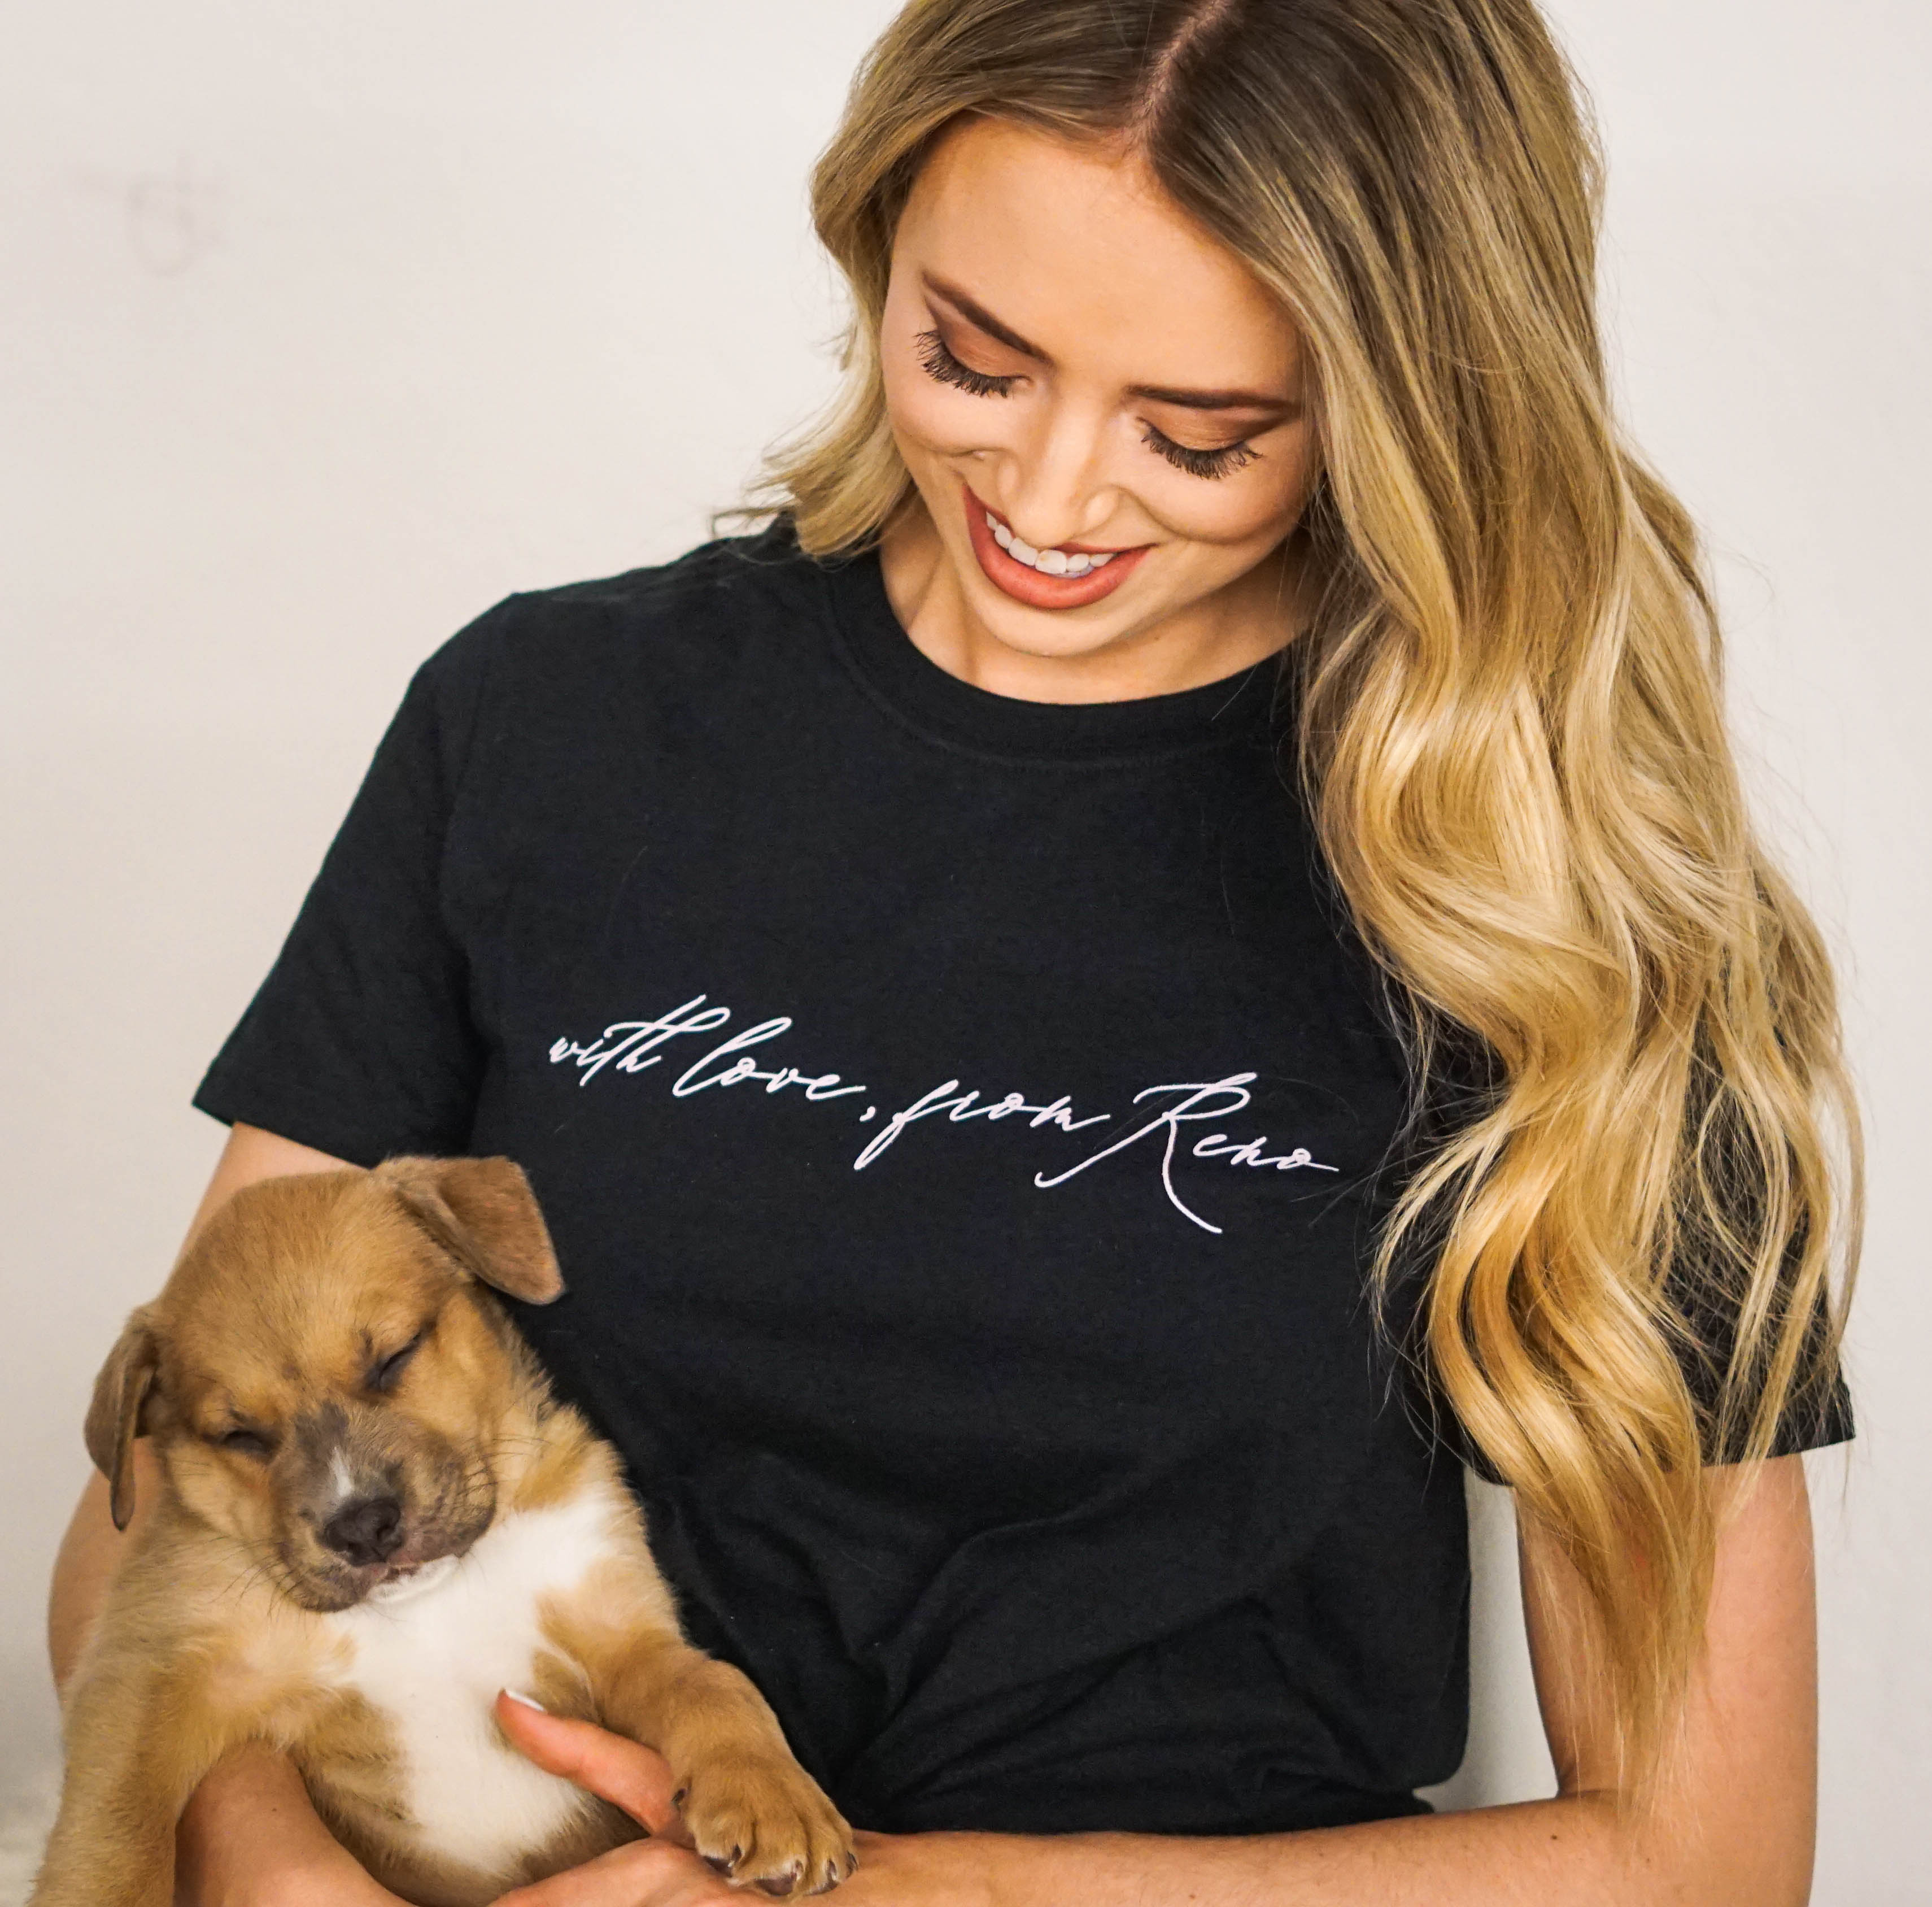 Woman in a t-shirt from a local clothing store holding a sleeping puppy from the SPCA.